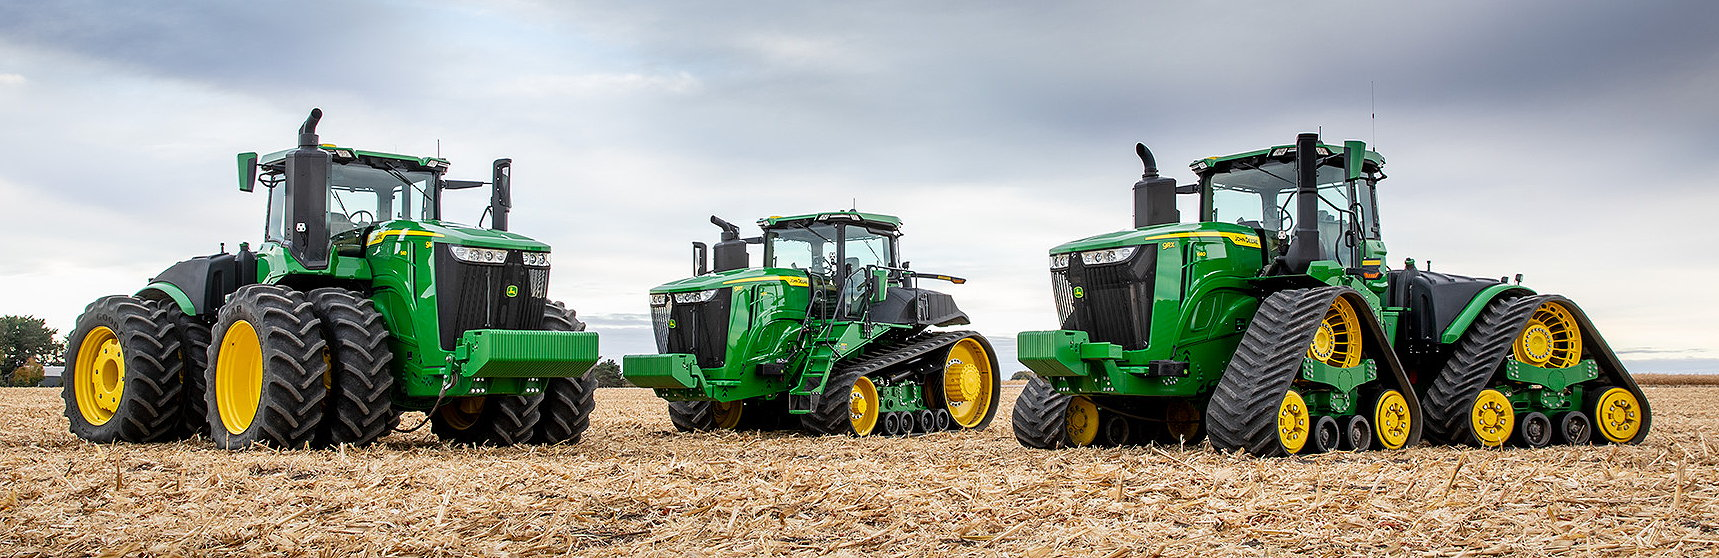 The 2021 Deere offering includes 9R wheeled tractors, 9RT twin-track models and 9RX four-track versions.